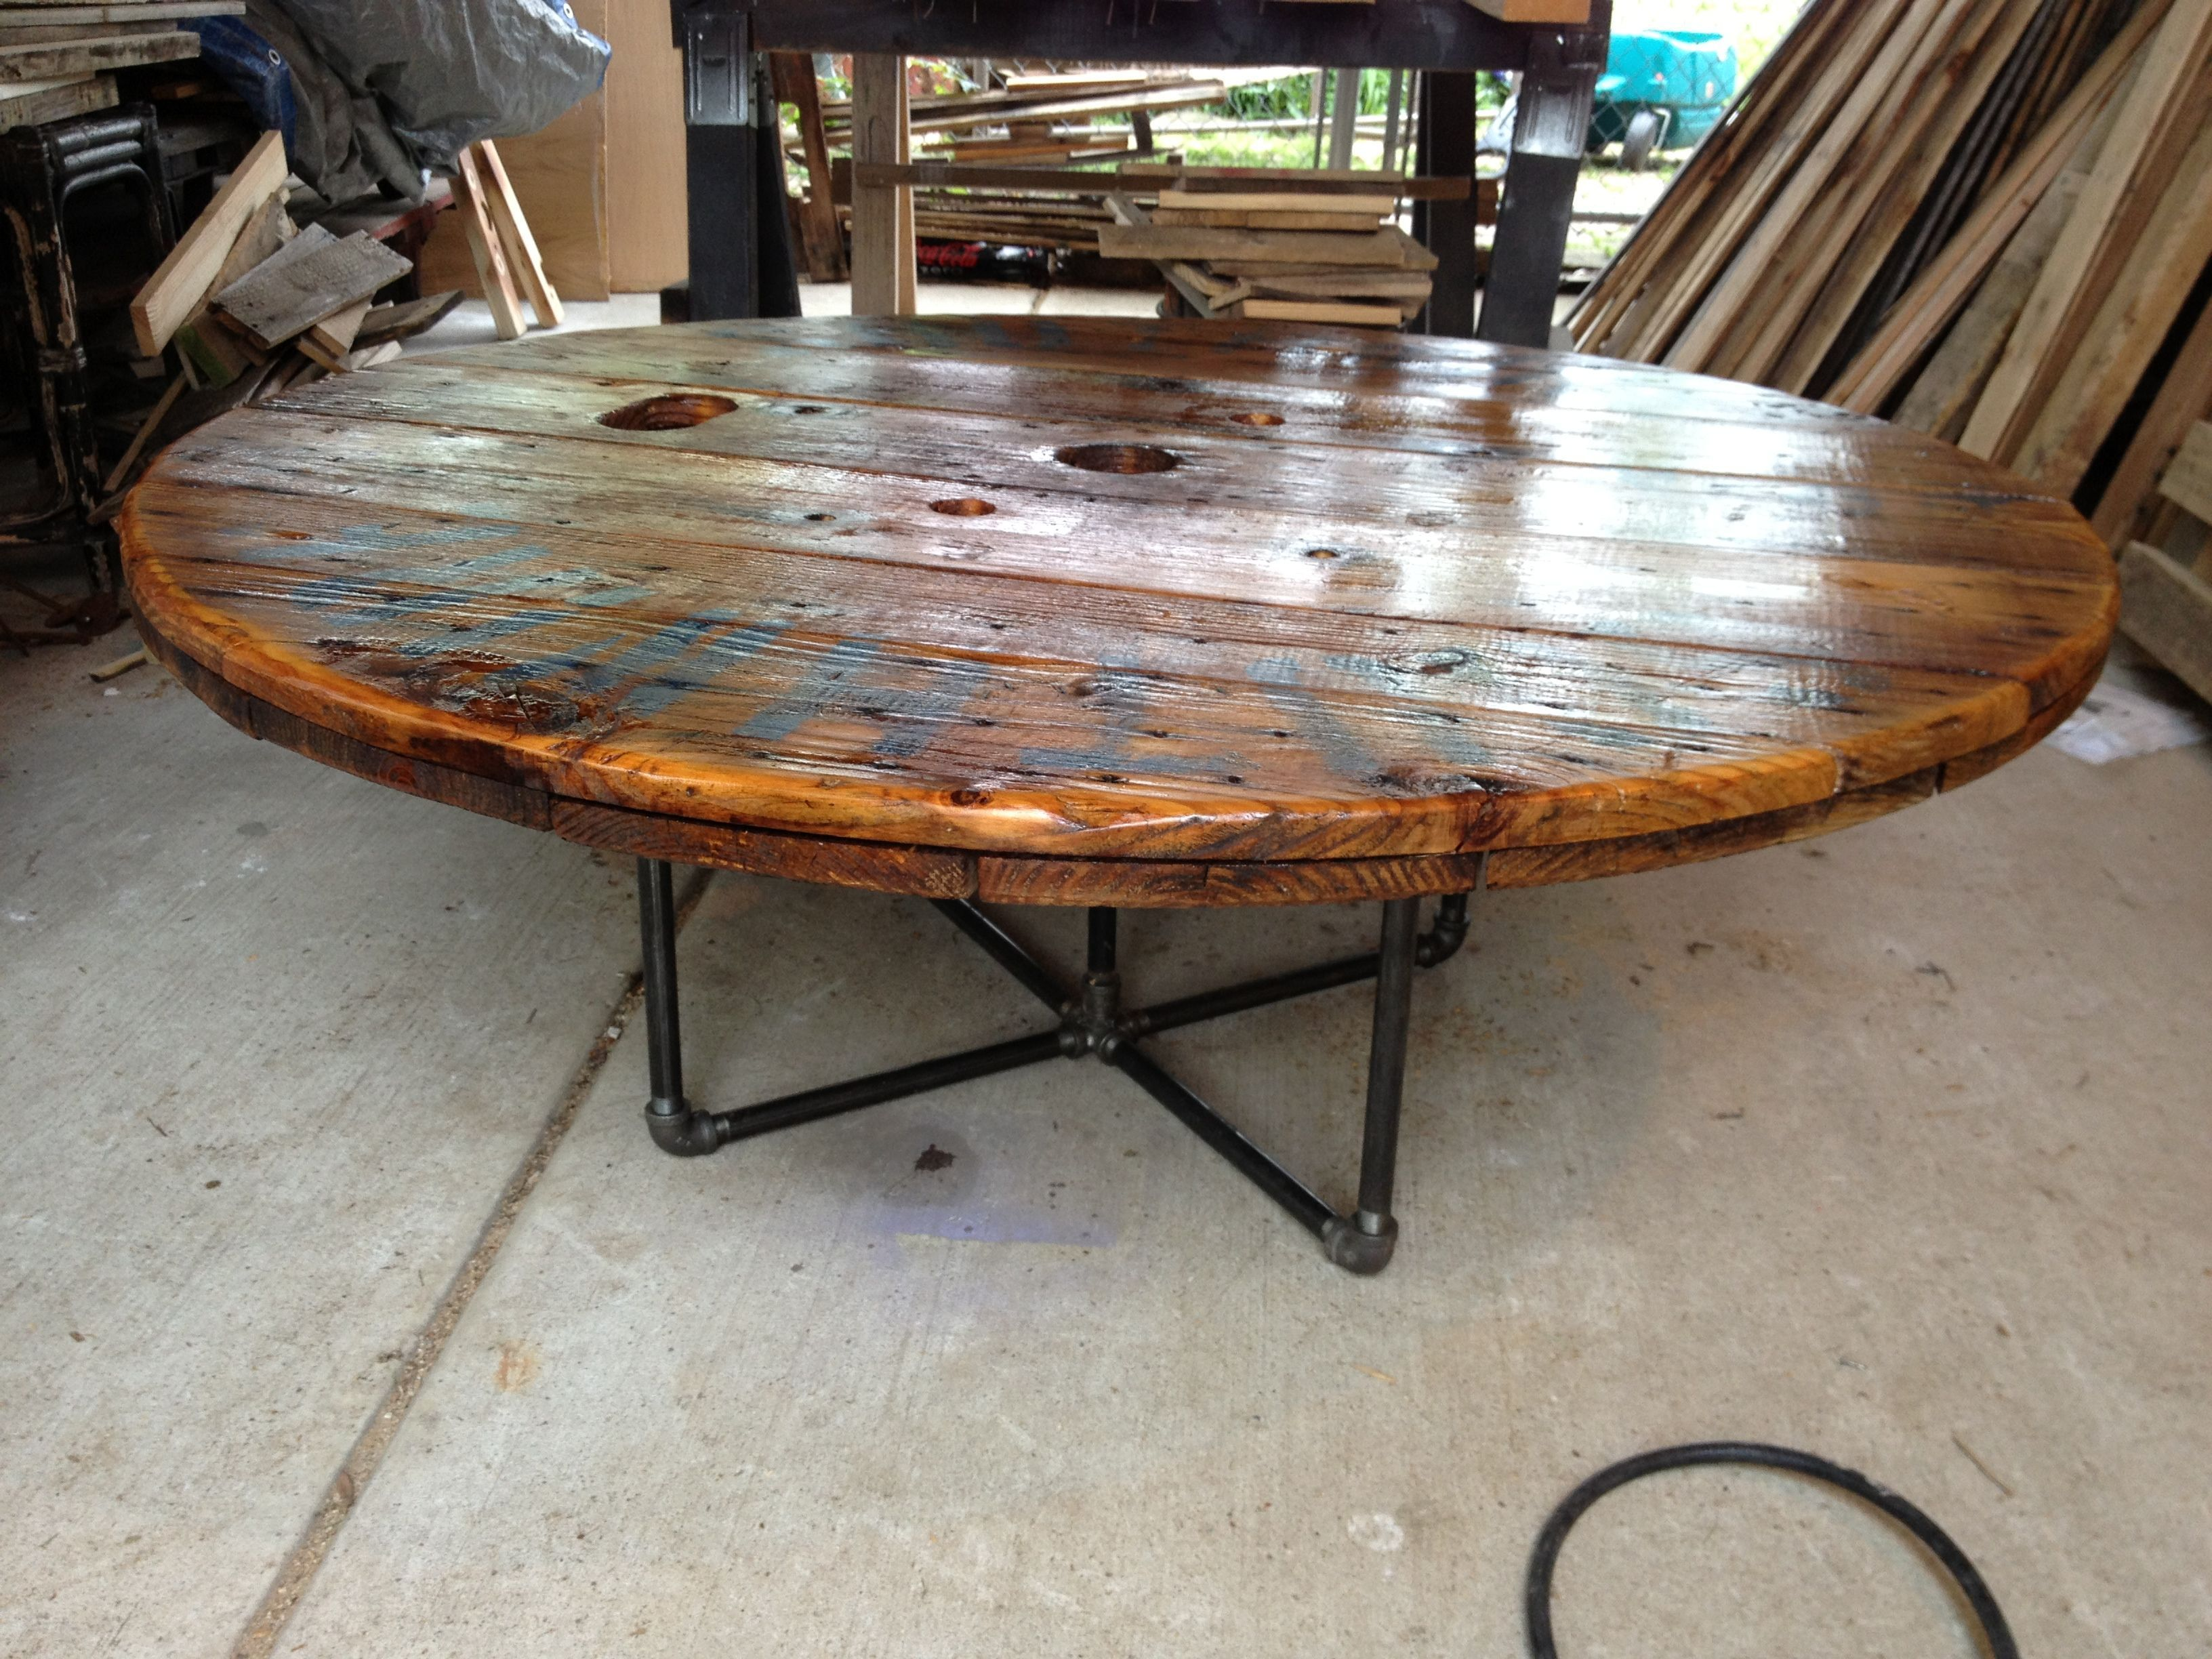 Coffee Table made from an old cable spool!! #cablespooltables Coffee Table made from an old cable spool!! #cablespooltables Coffee Table made from an old cable spool!! #cablespooltables Coffee Table made from an old cable spool!! #cablespooltables